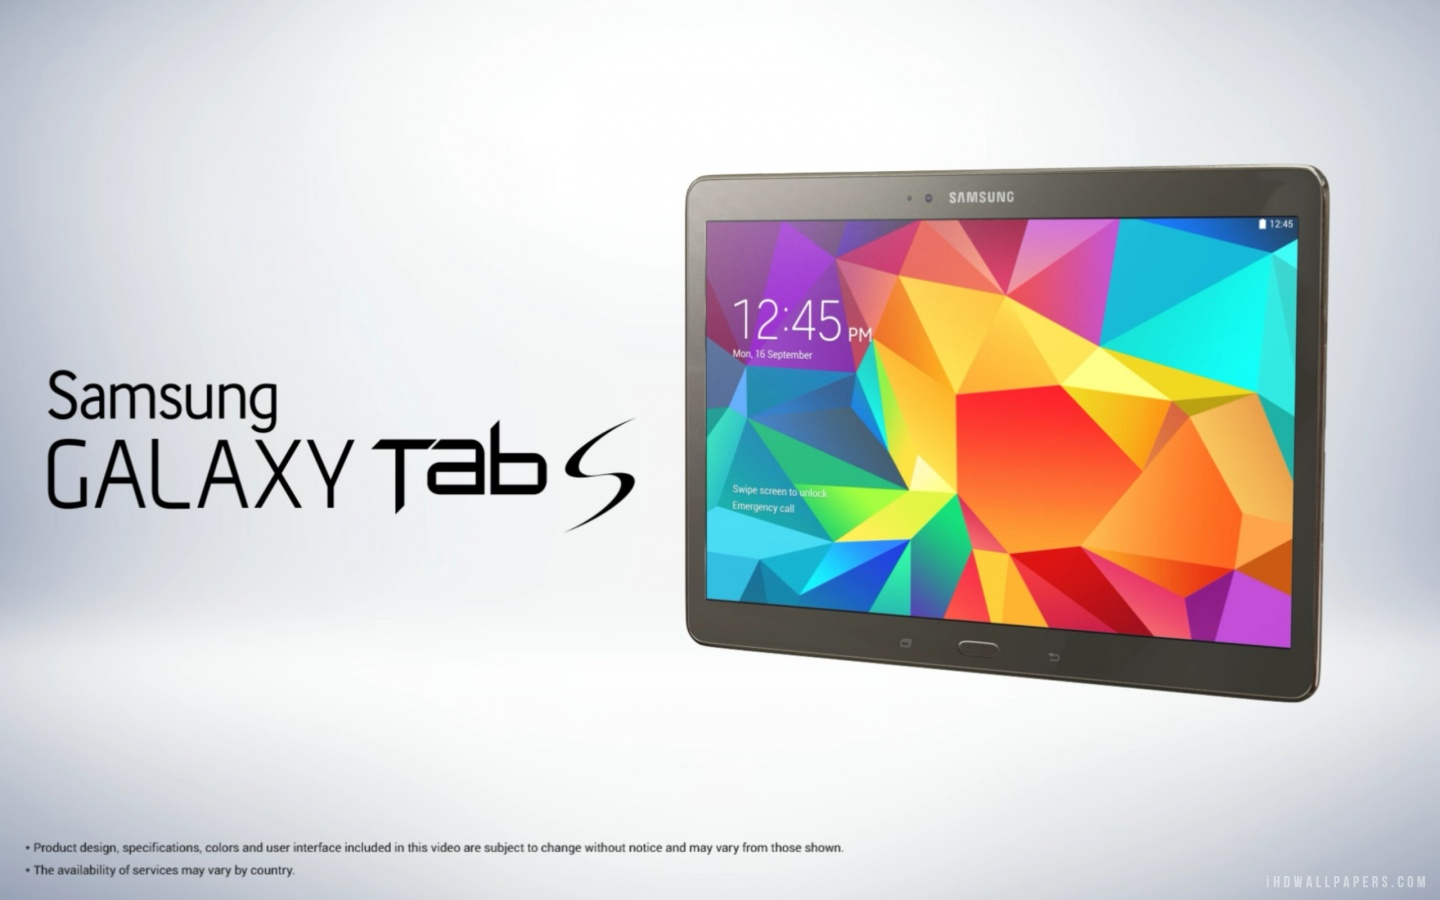 Samsung Galaxy Tab S HD Wallpaper   iHD Wallpapers 1440x900